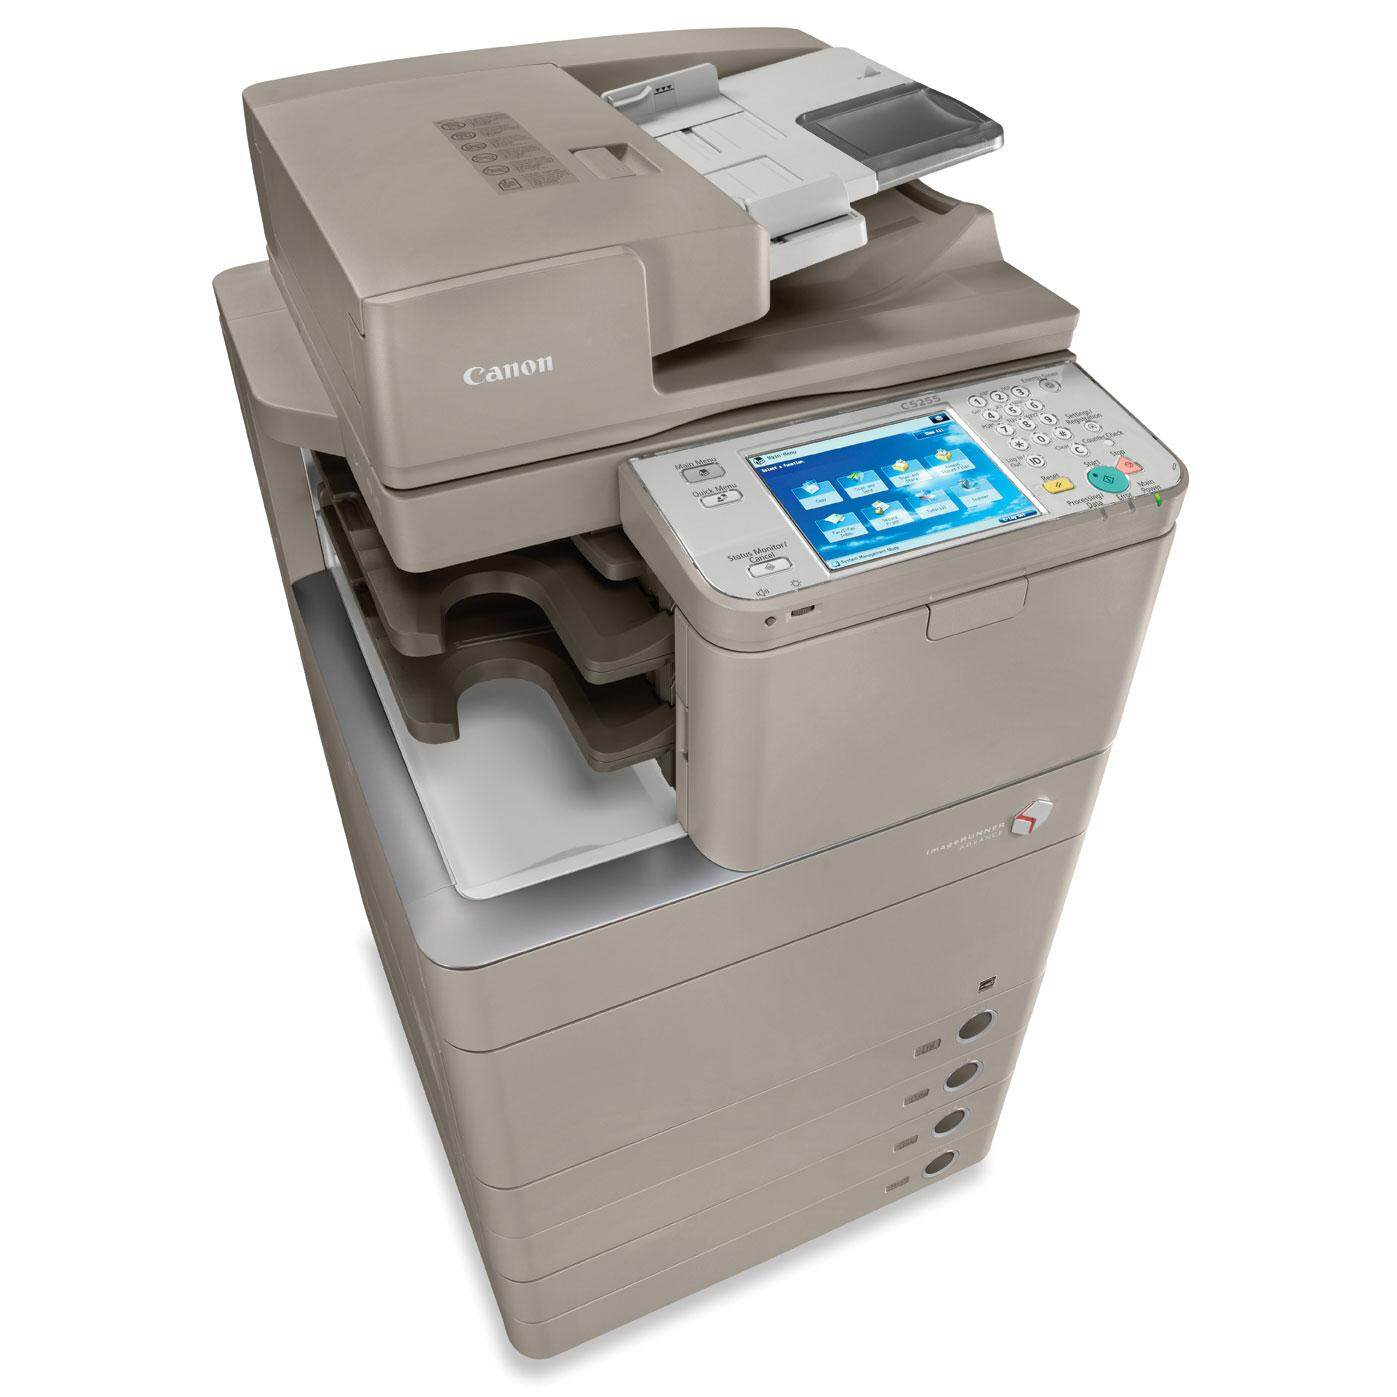 Scanner Color high speed A3-A4 PDF- Fotokopi -Copy Print Scan-Photocopier Machine-Photostat Copier-Photocopy-Canon -CopierWorld.my-Copying-Printing-Scanner- Fax-A4 A3 size-Mono Printer -Color Scanner-Scan PDF- Bypsss -Offer -Copier Malaysia